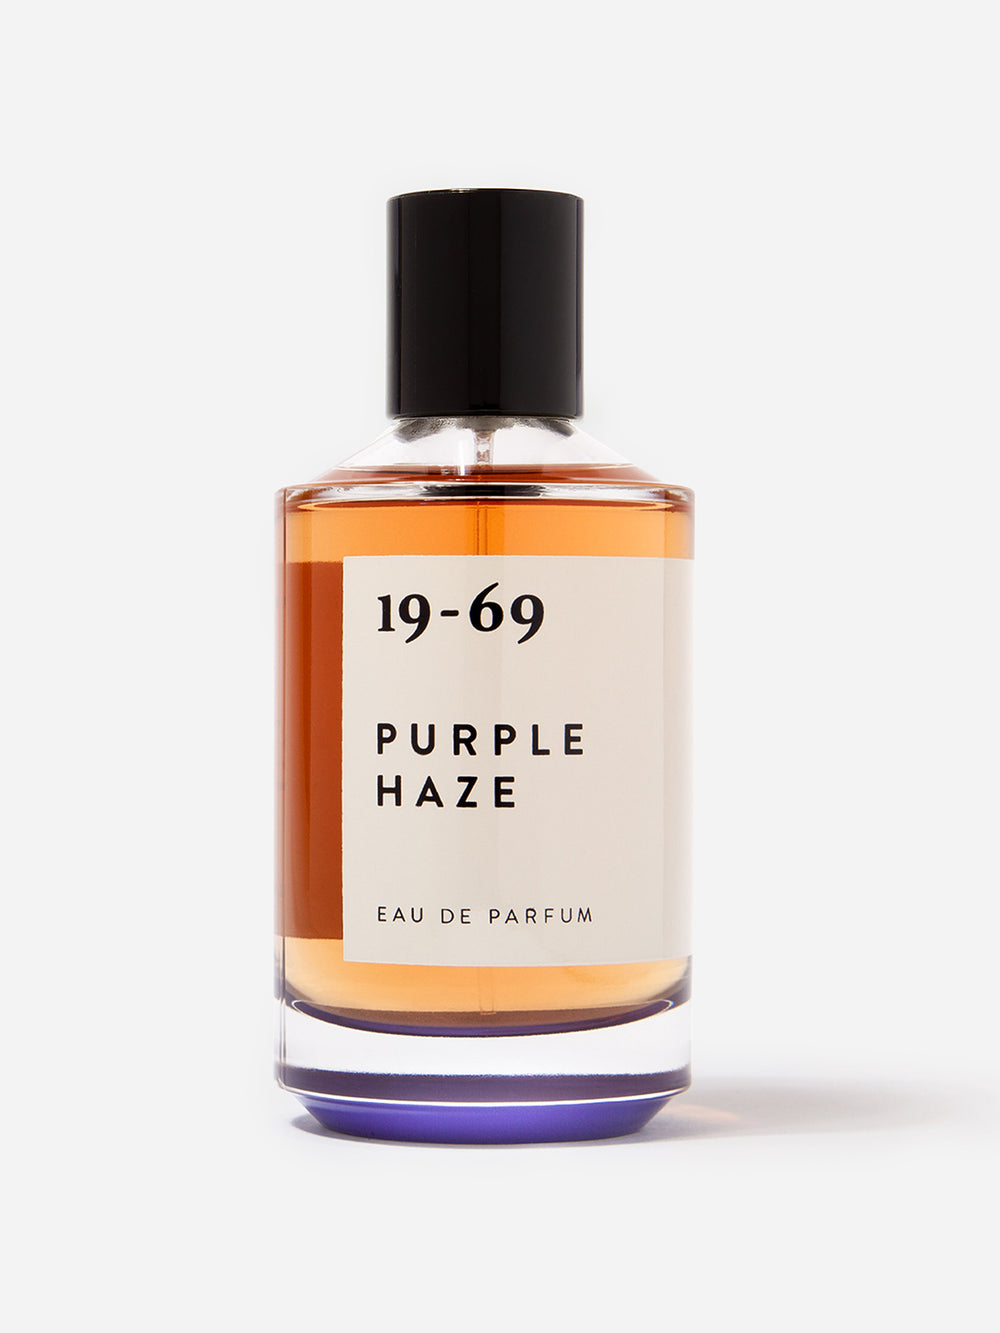 PURPLE HAZE perfume for men and women unisex purple haze 100ml 19-69